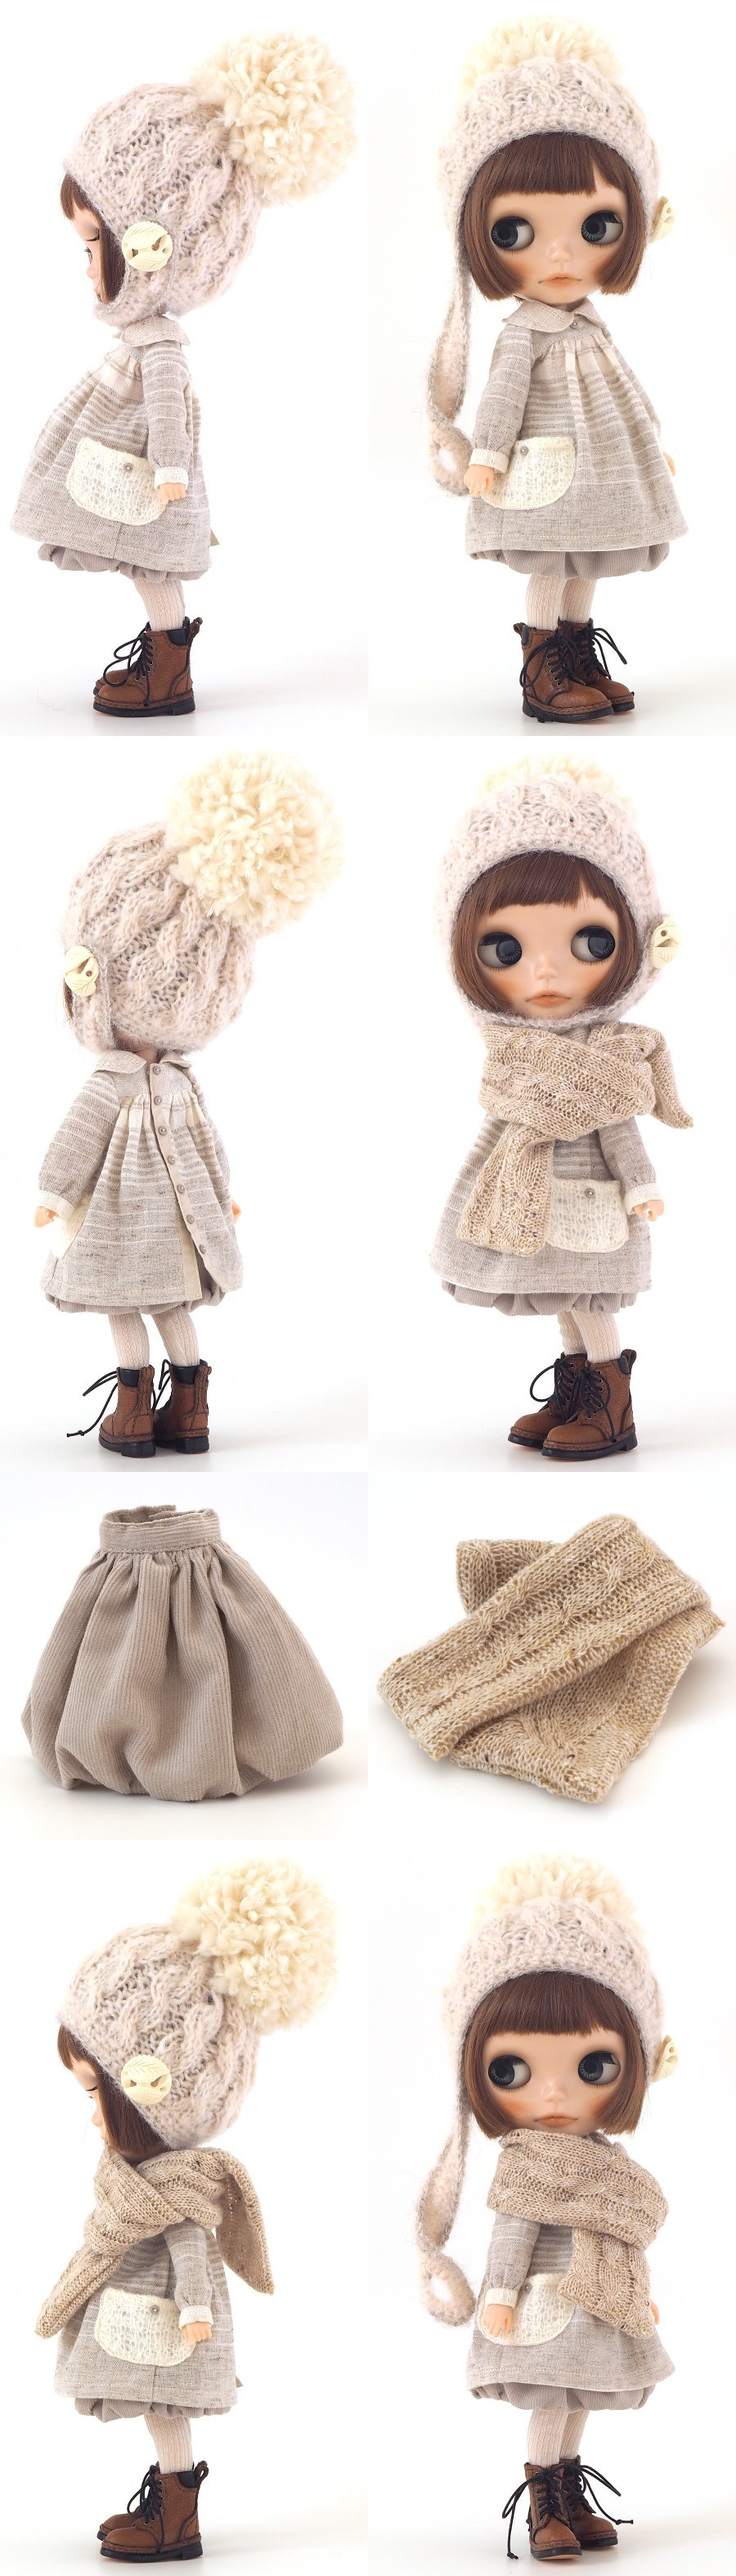 ** Blythe outfit ** Lucalily 560**_d0217189_10285231.jpg